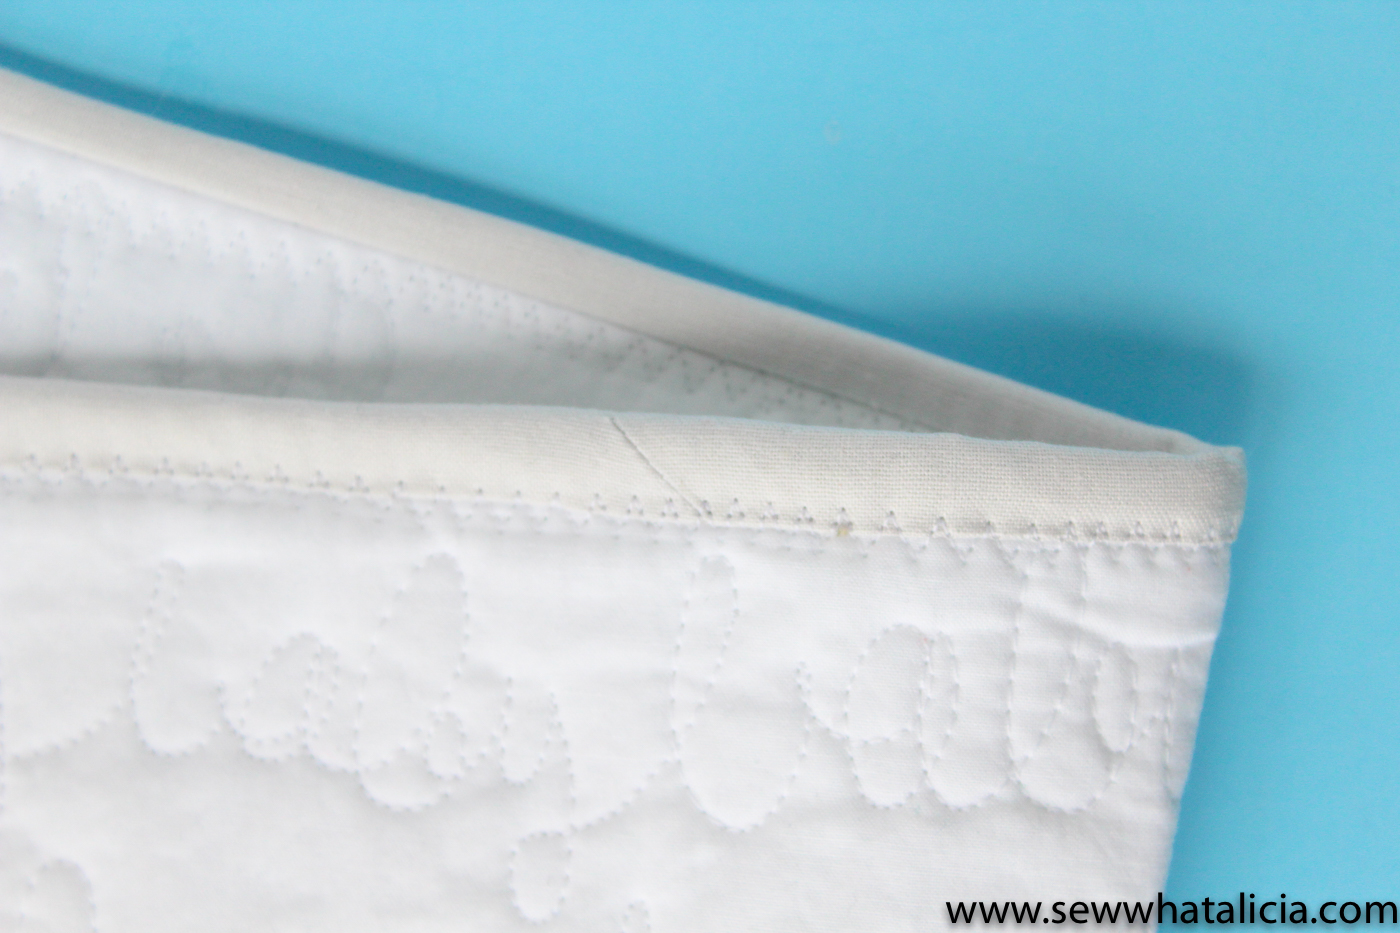 How to Make Quilt Binding: If you are new to quilting or have never attempted creating your own binding then this post is for you. This will walk you through creating and attaching quilt binding. Click through for the full tutorial and lots of tips and tricks. | www.sewwhatalicia.com